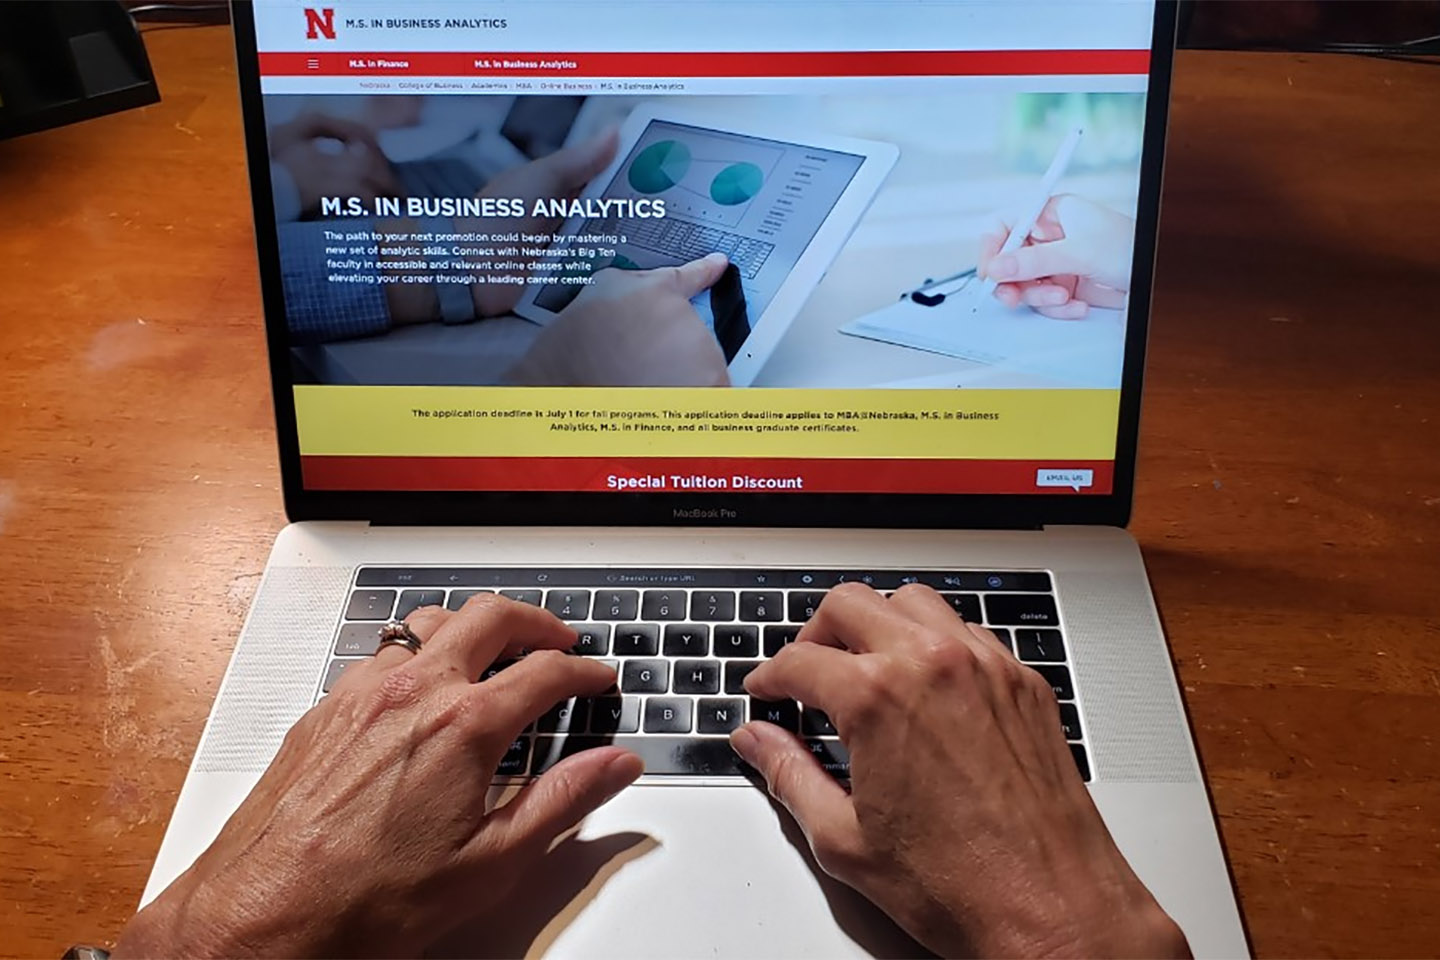 GRAD2GRAD Program Provides Special Tuition Discount for Nebraska Graduates